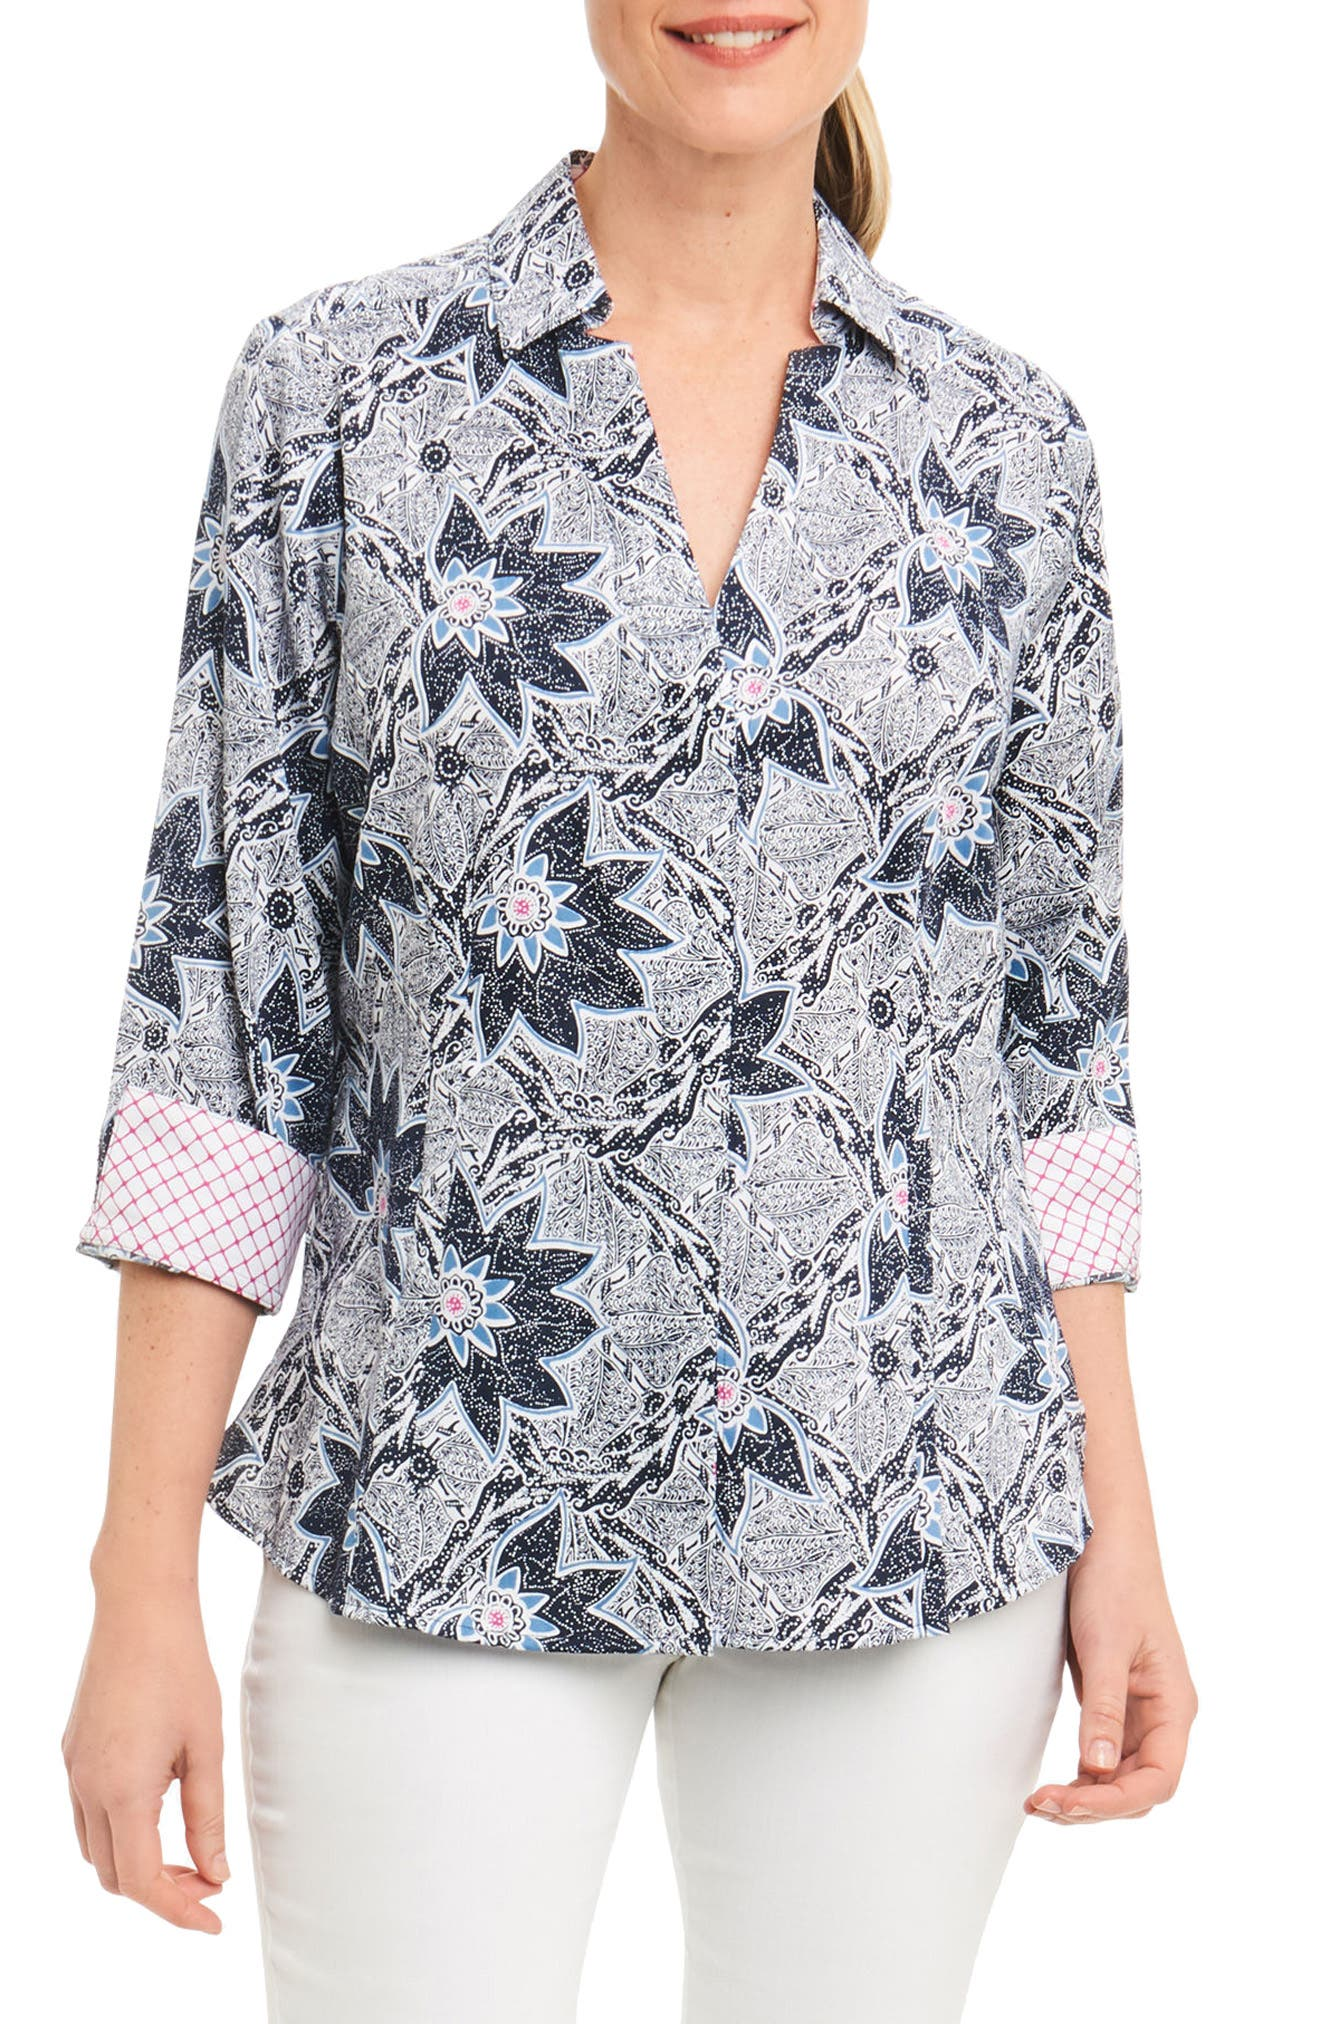 Alternate Image 1 Selected - Foxcroft Taylor Summer Floral Shirt (Regular & Petite)